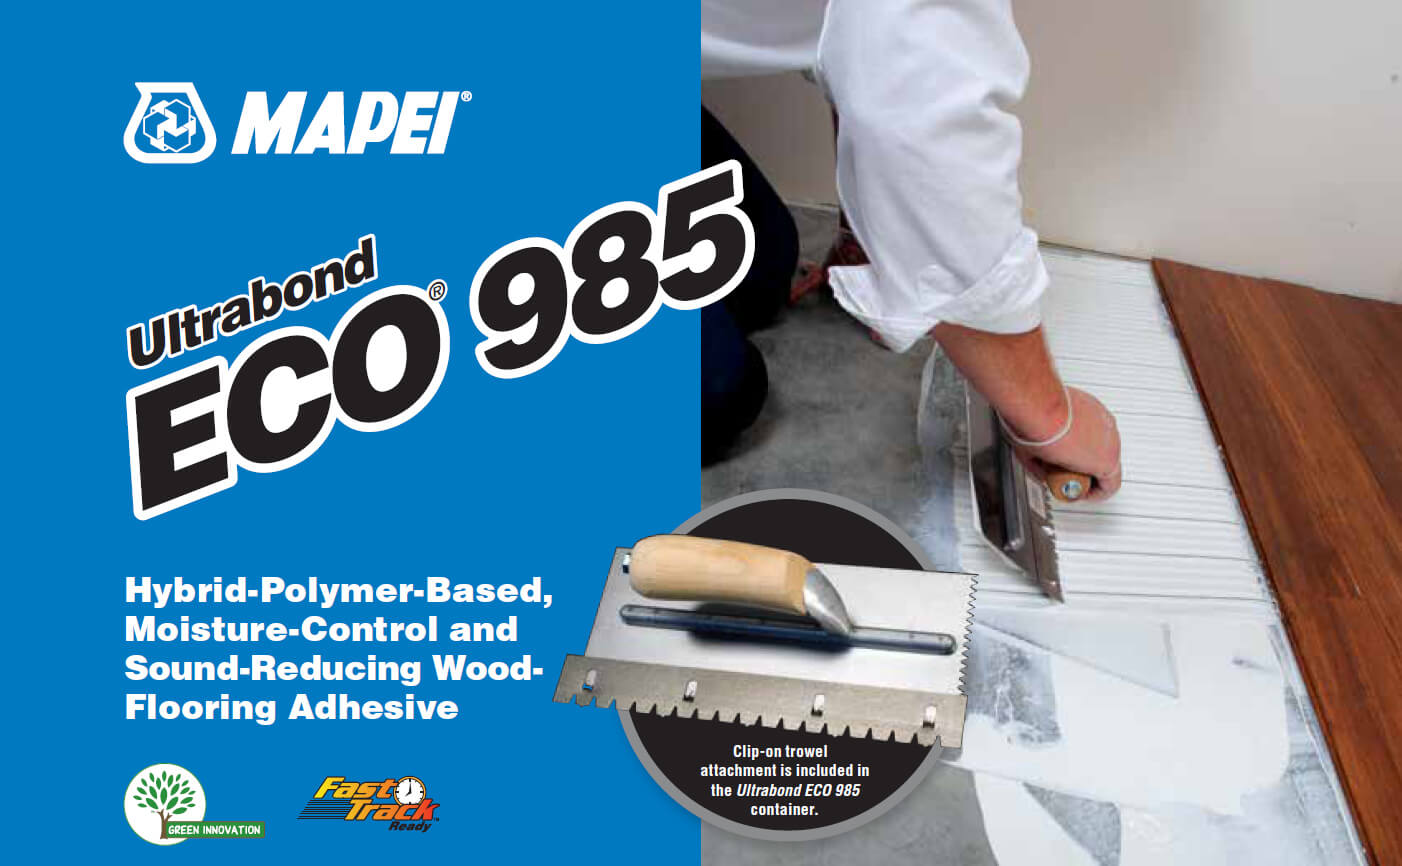 Mapei Ultrabond ECO® 985 Hybrid-Polymer-Based, Moisture Control, and